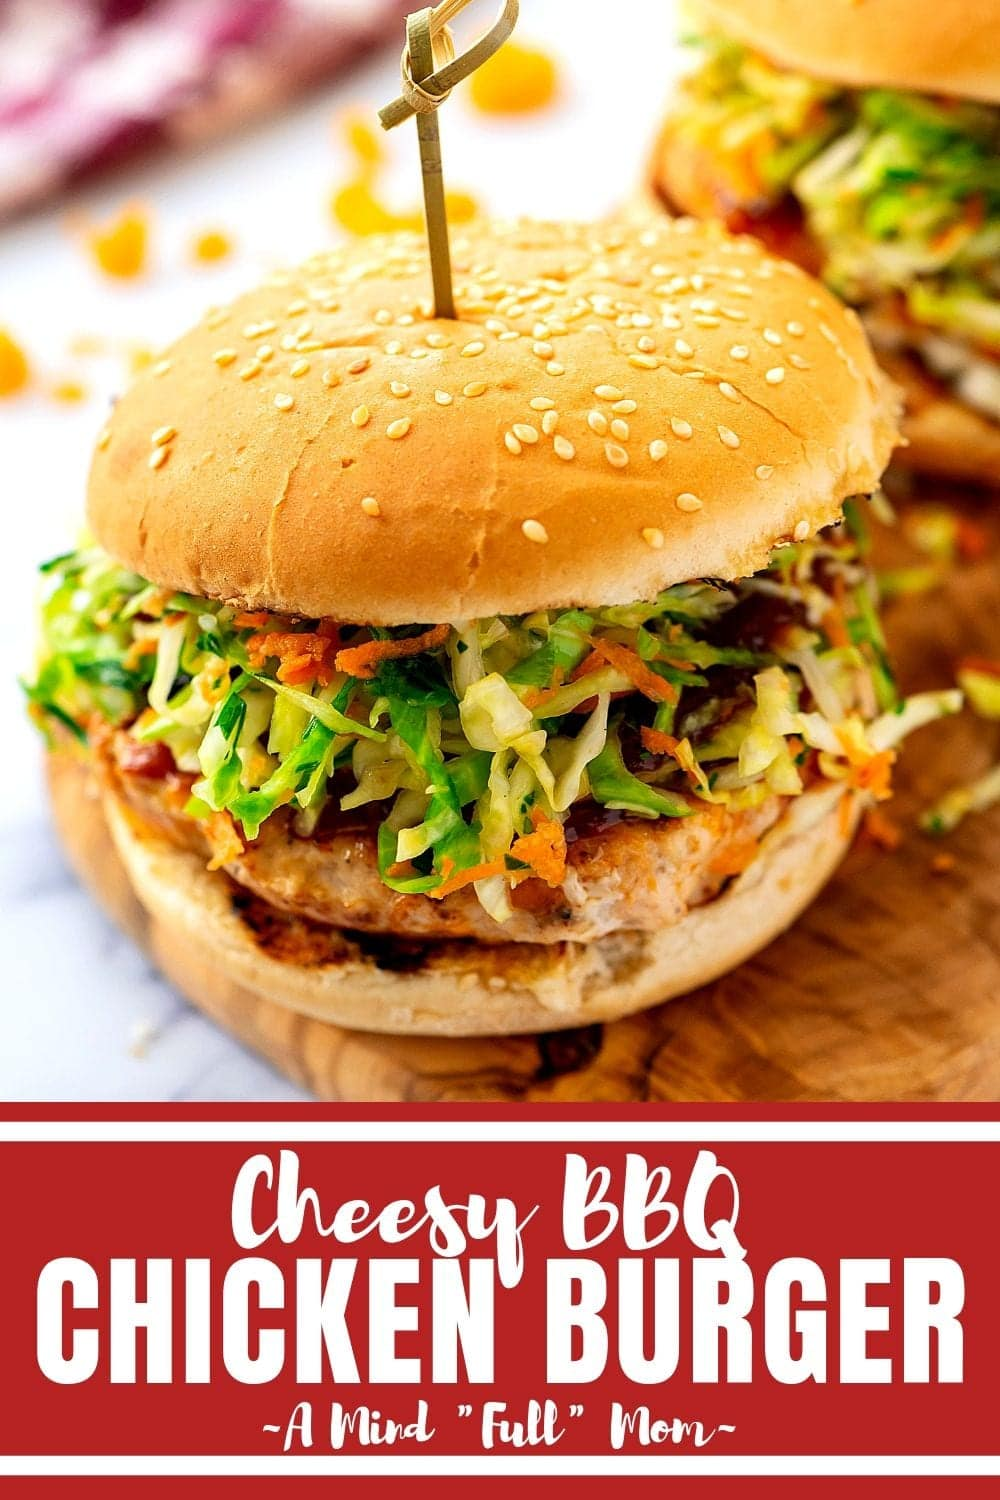 If you think Chicken Burgers are dry and flavorless, you have been making them all wrong! This chicken burger recipe is made with barbecue sauce, cheddar cheese and is incredibly flavorful and juicy!